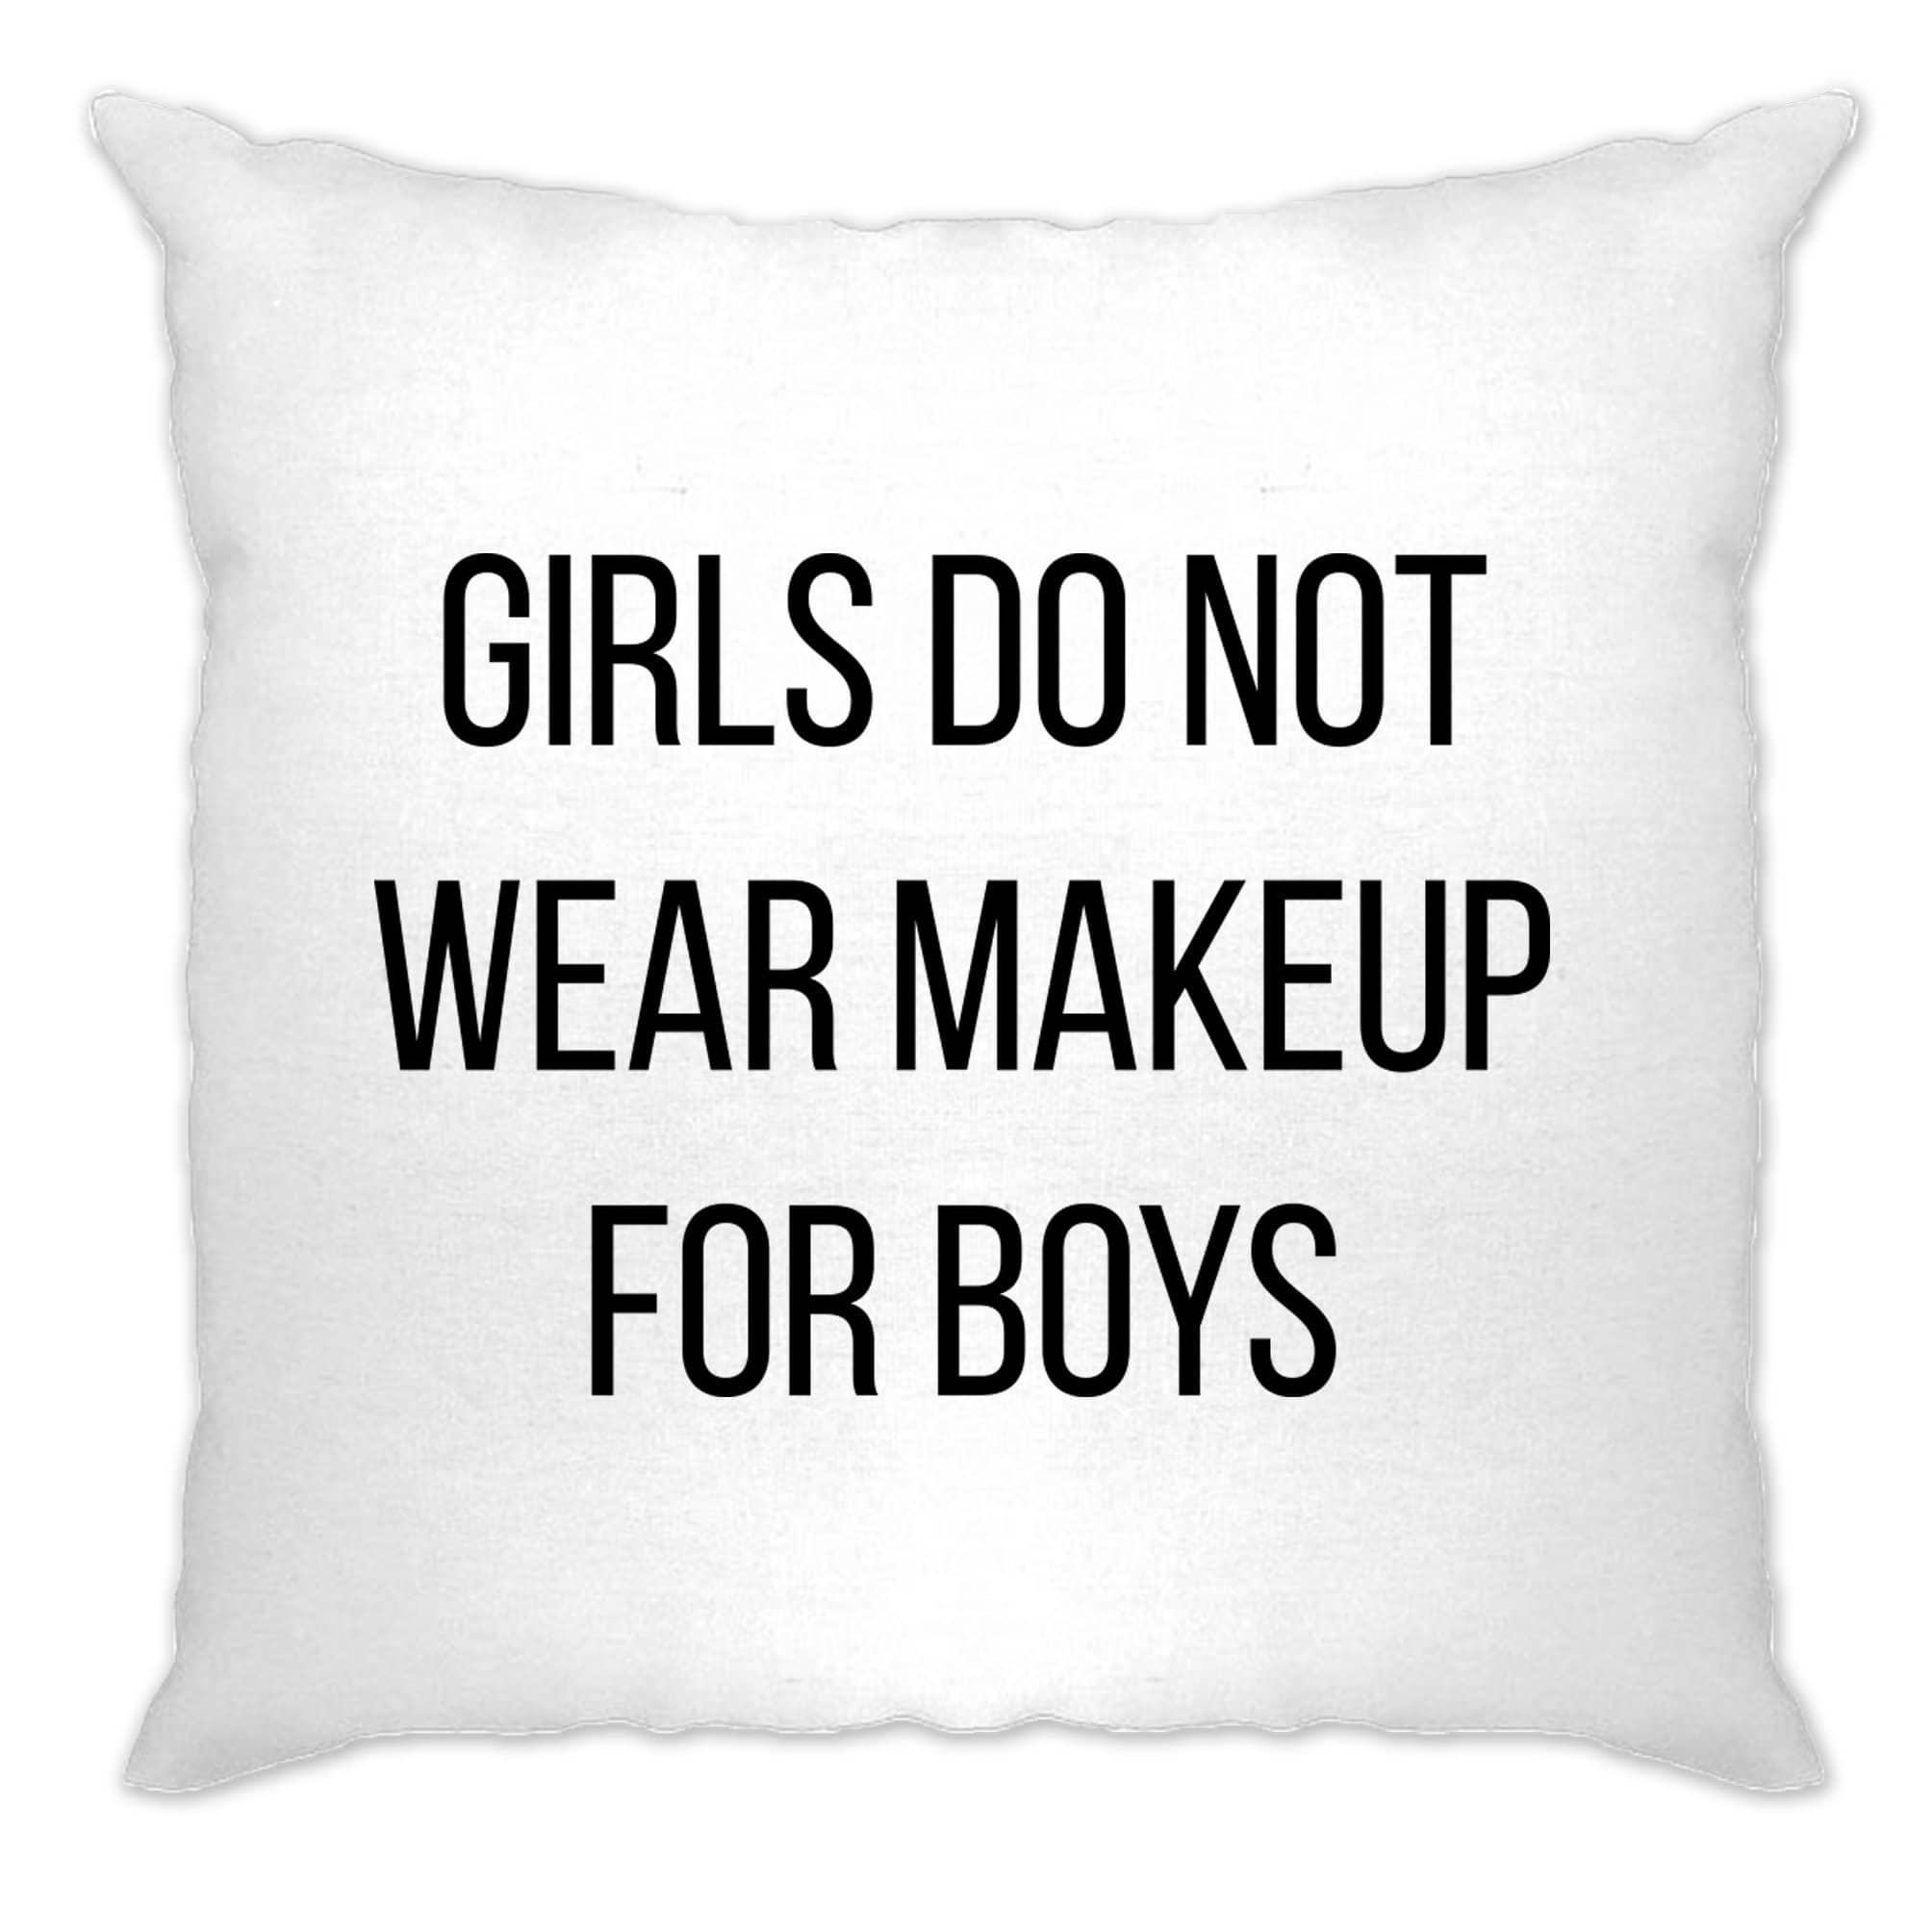 Feminist Cushion Cover Girls Do Not Wear Makeup For Boys